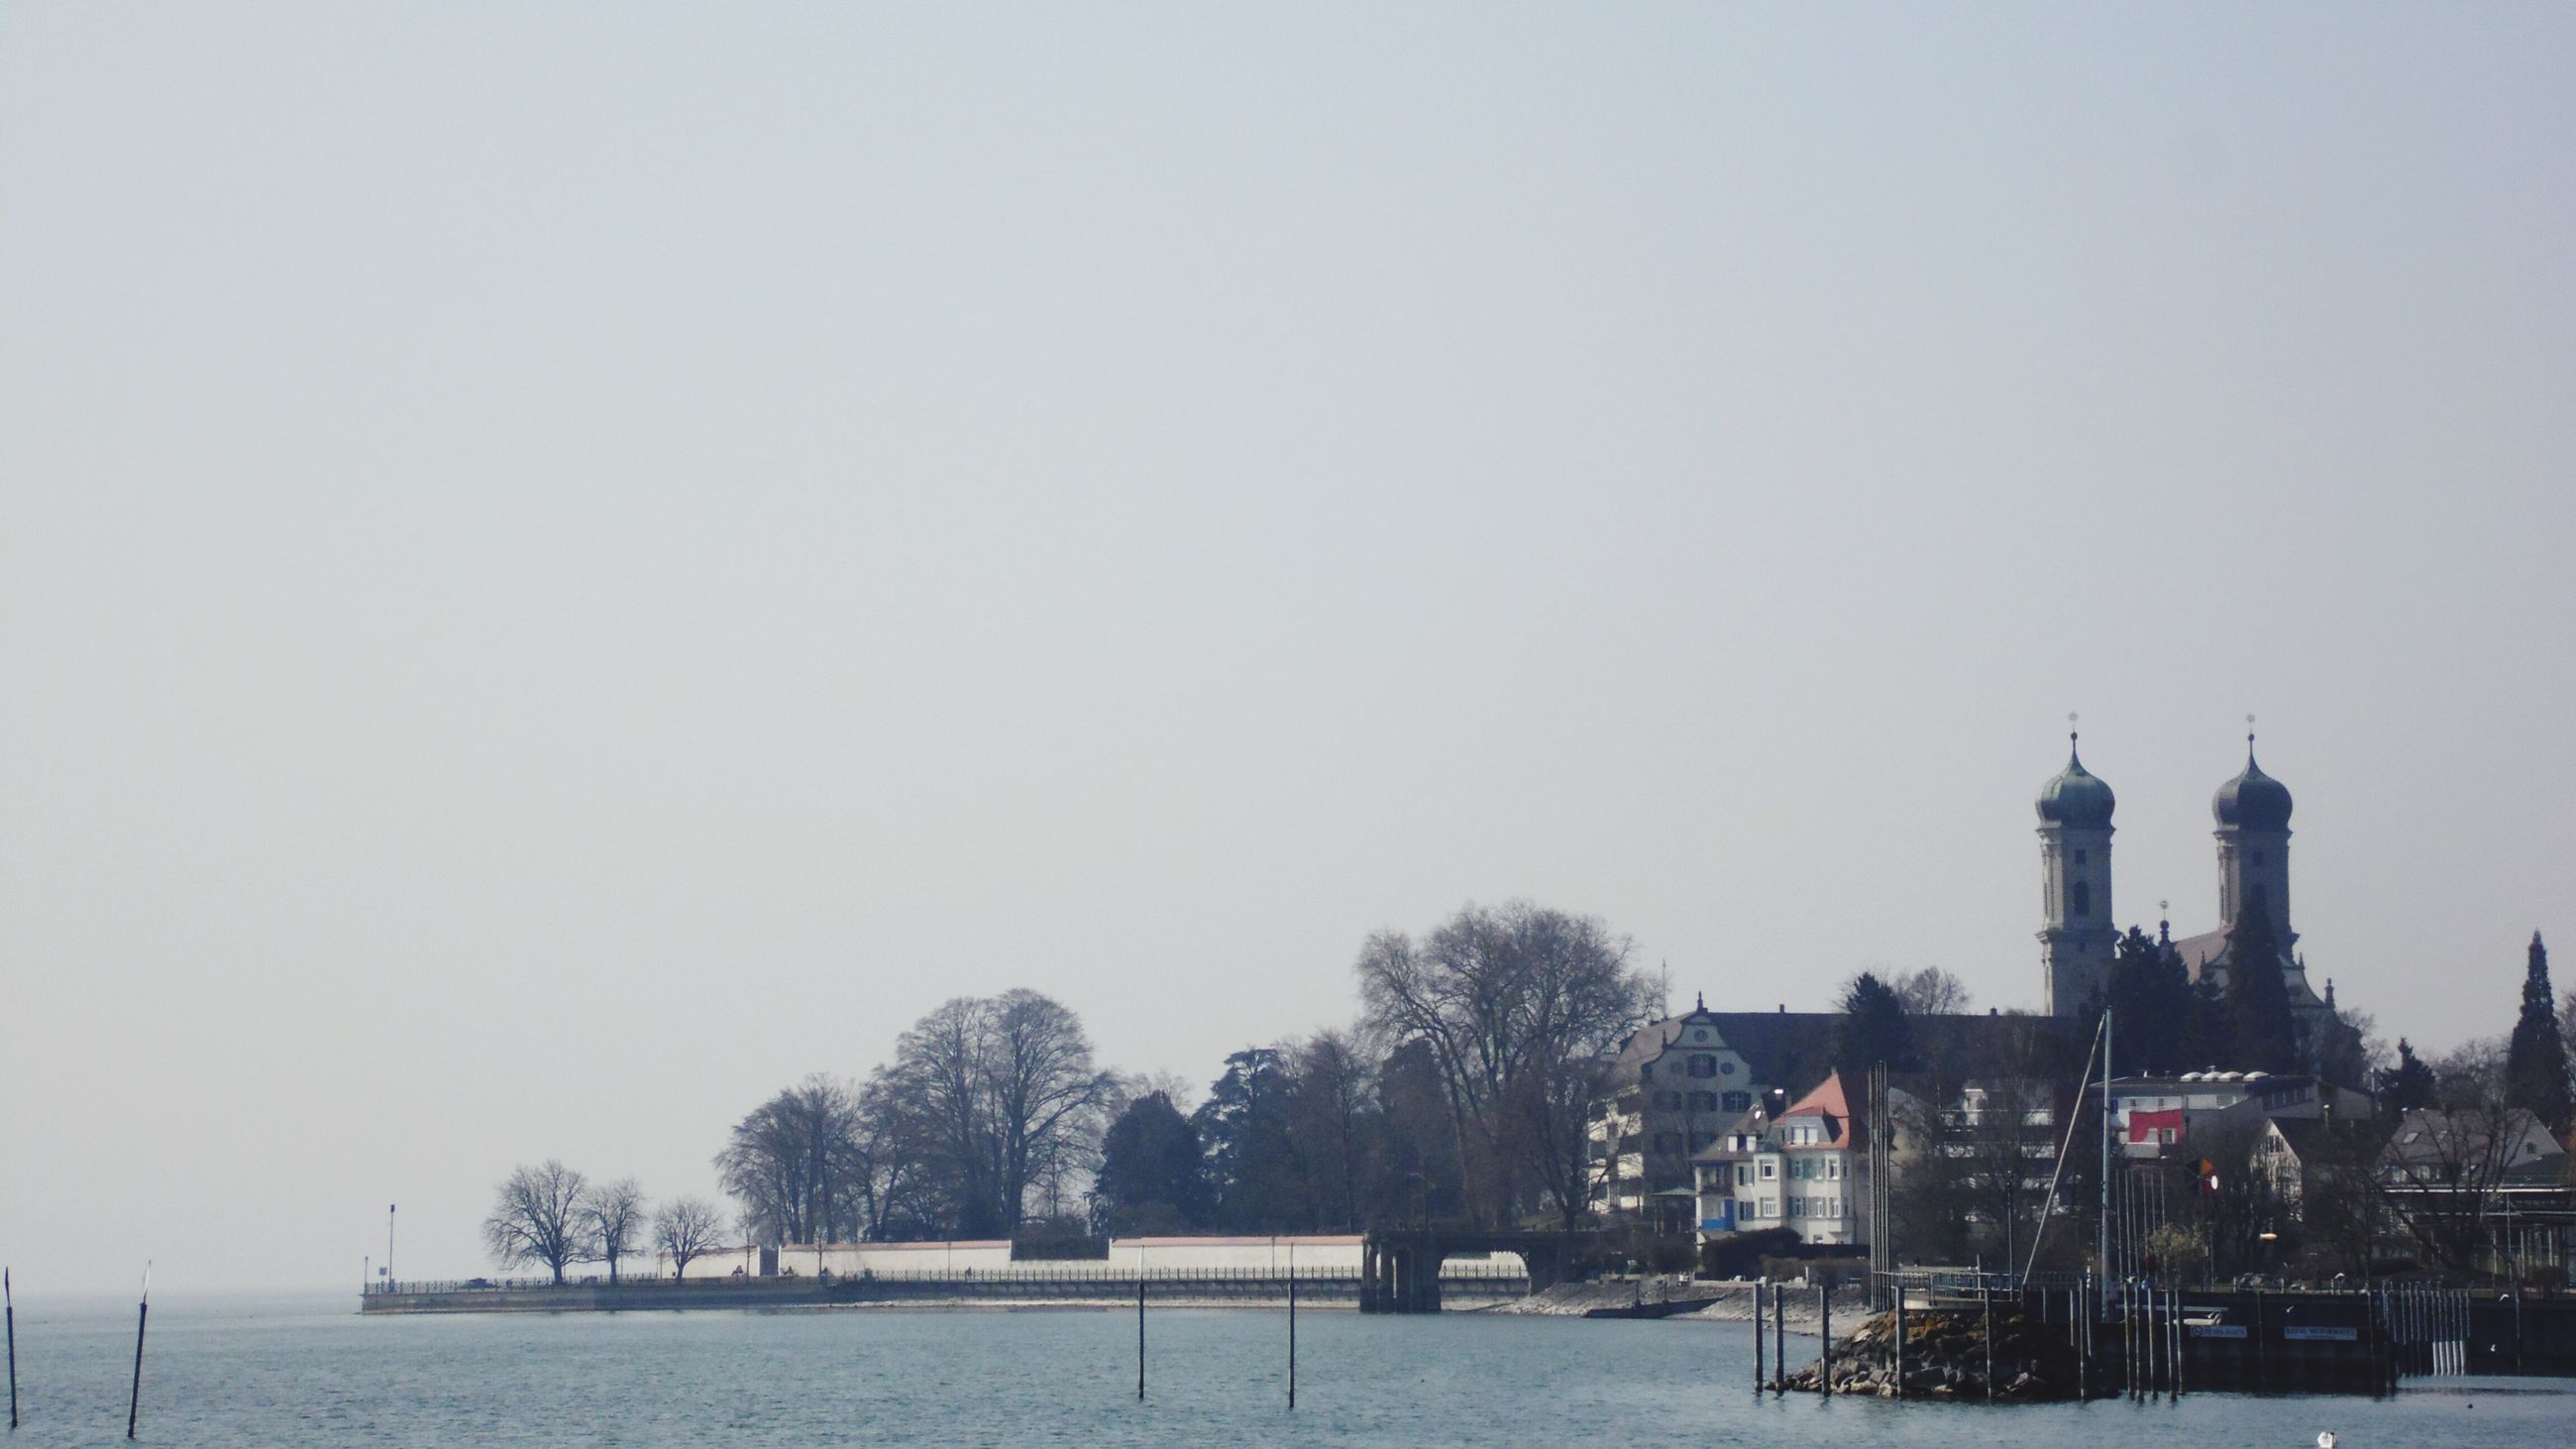 clear sky, water, built structure, waterfront, copy space, building exterior, architecture, tree, river, lake, nature, tranquility, winter, tranquil scene, bare tree, outdoors, nautical vessel, day, city, beauty in nature